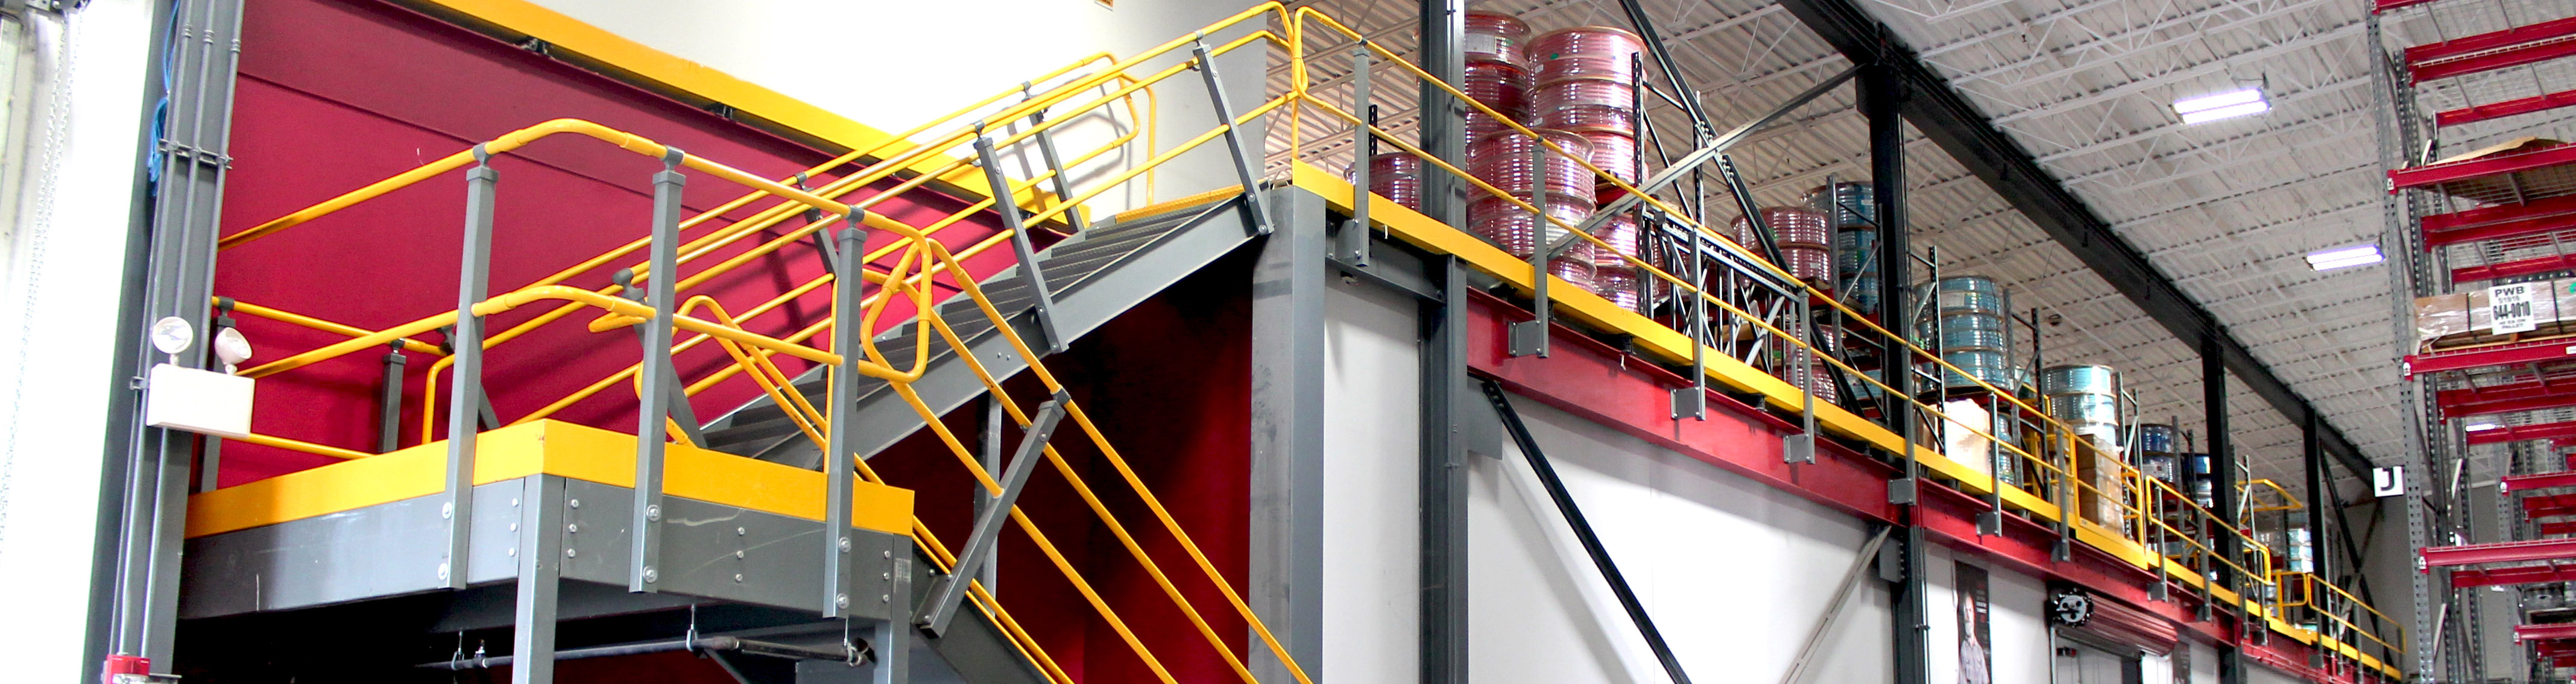 wildeck-storage-supplies-mezzanine-banner